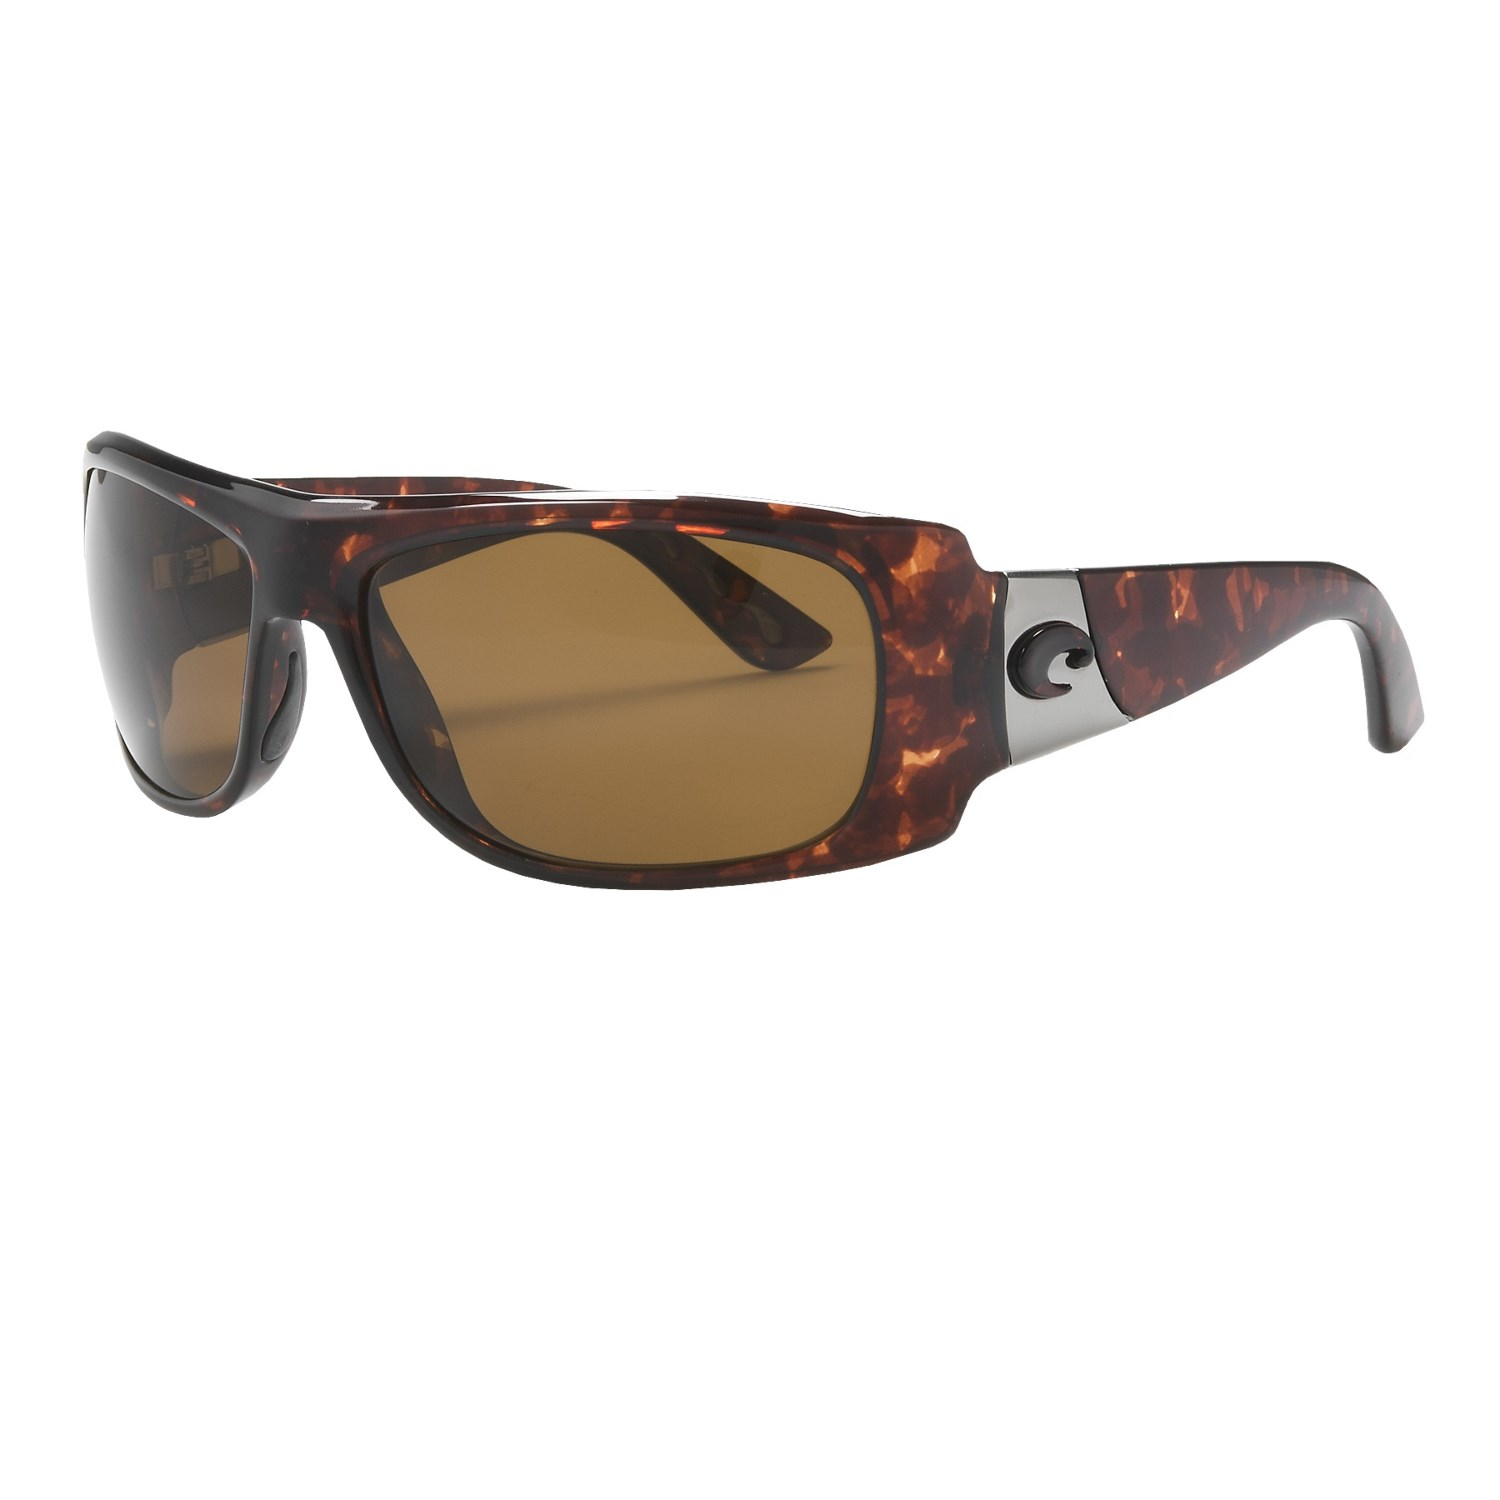 42dfddbf7f Costa Polarized Sunglasses Review « Heritage Malta